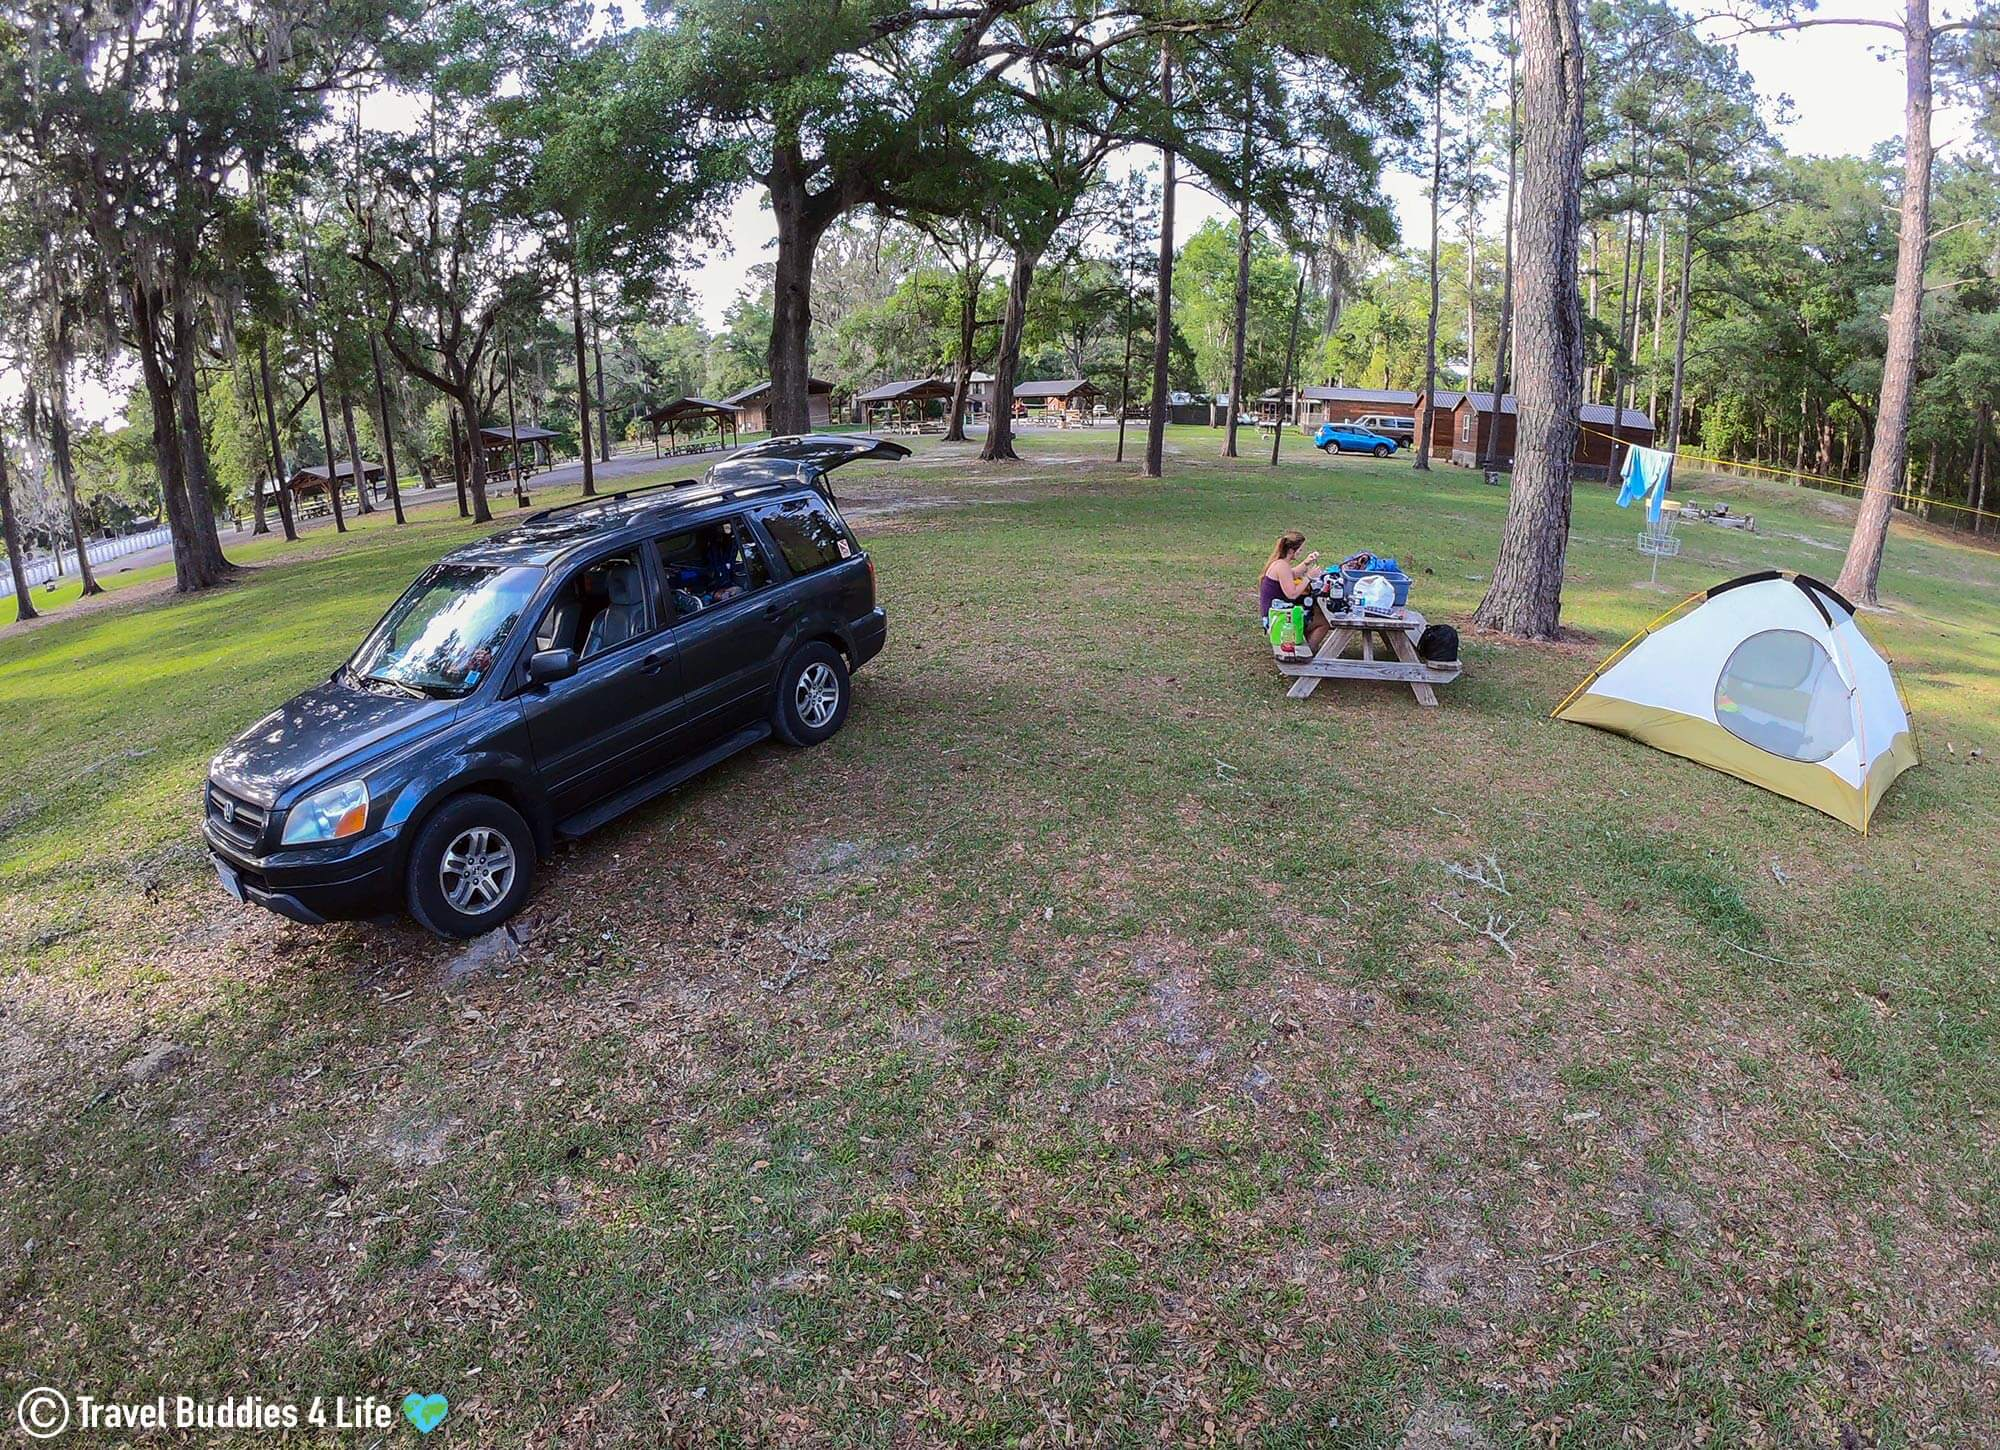 The Blue Grotto Resort Camp Site In Williston, Florida, USA